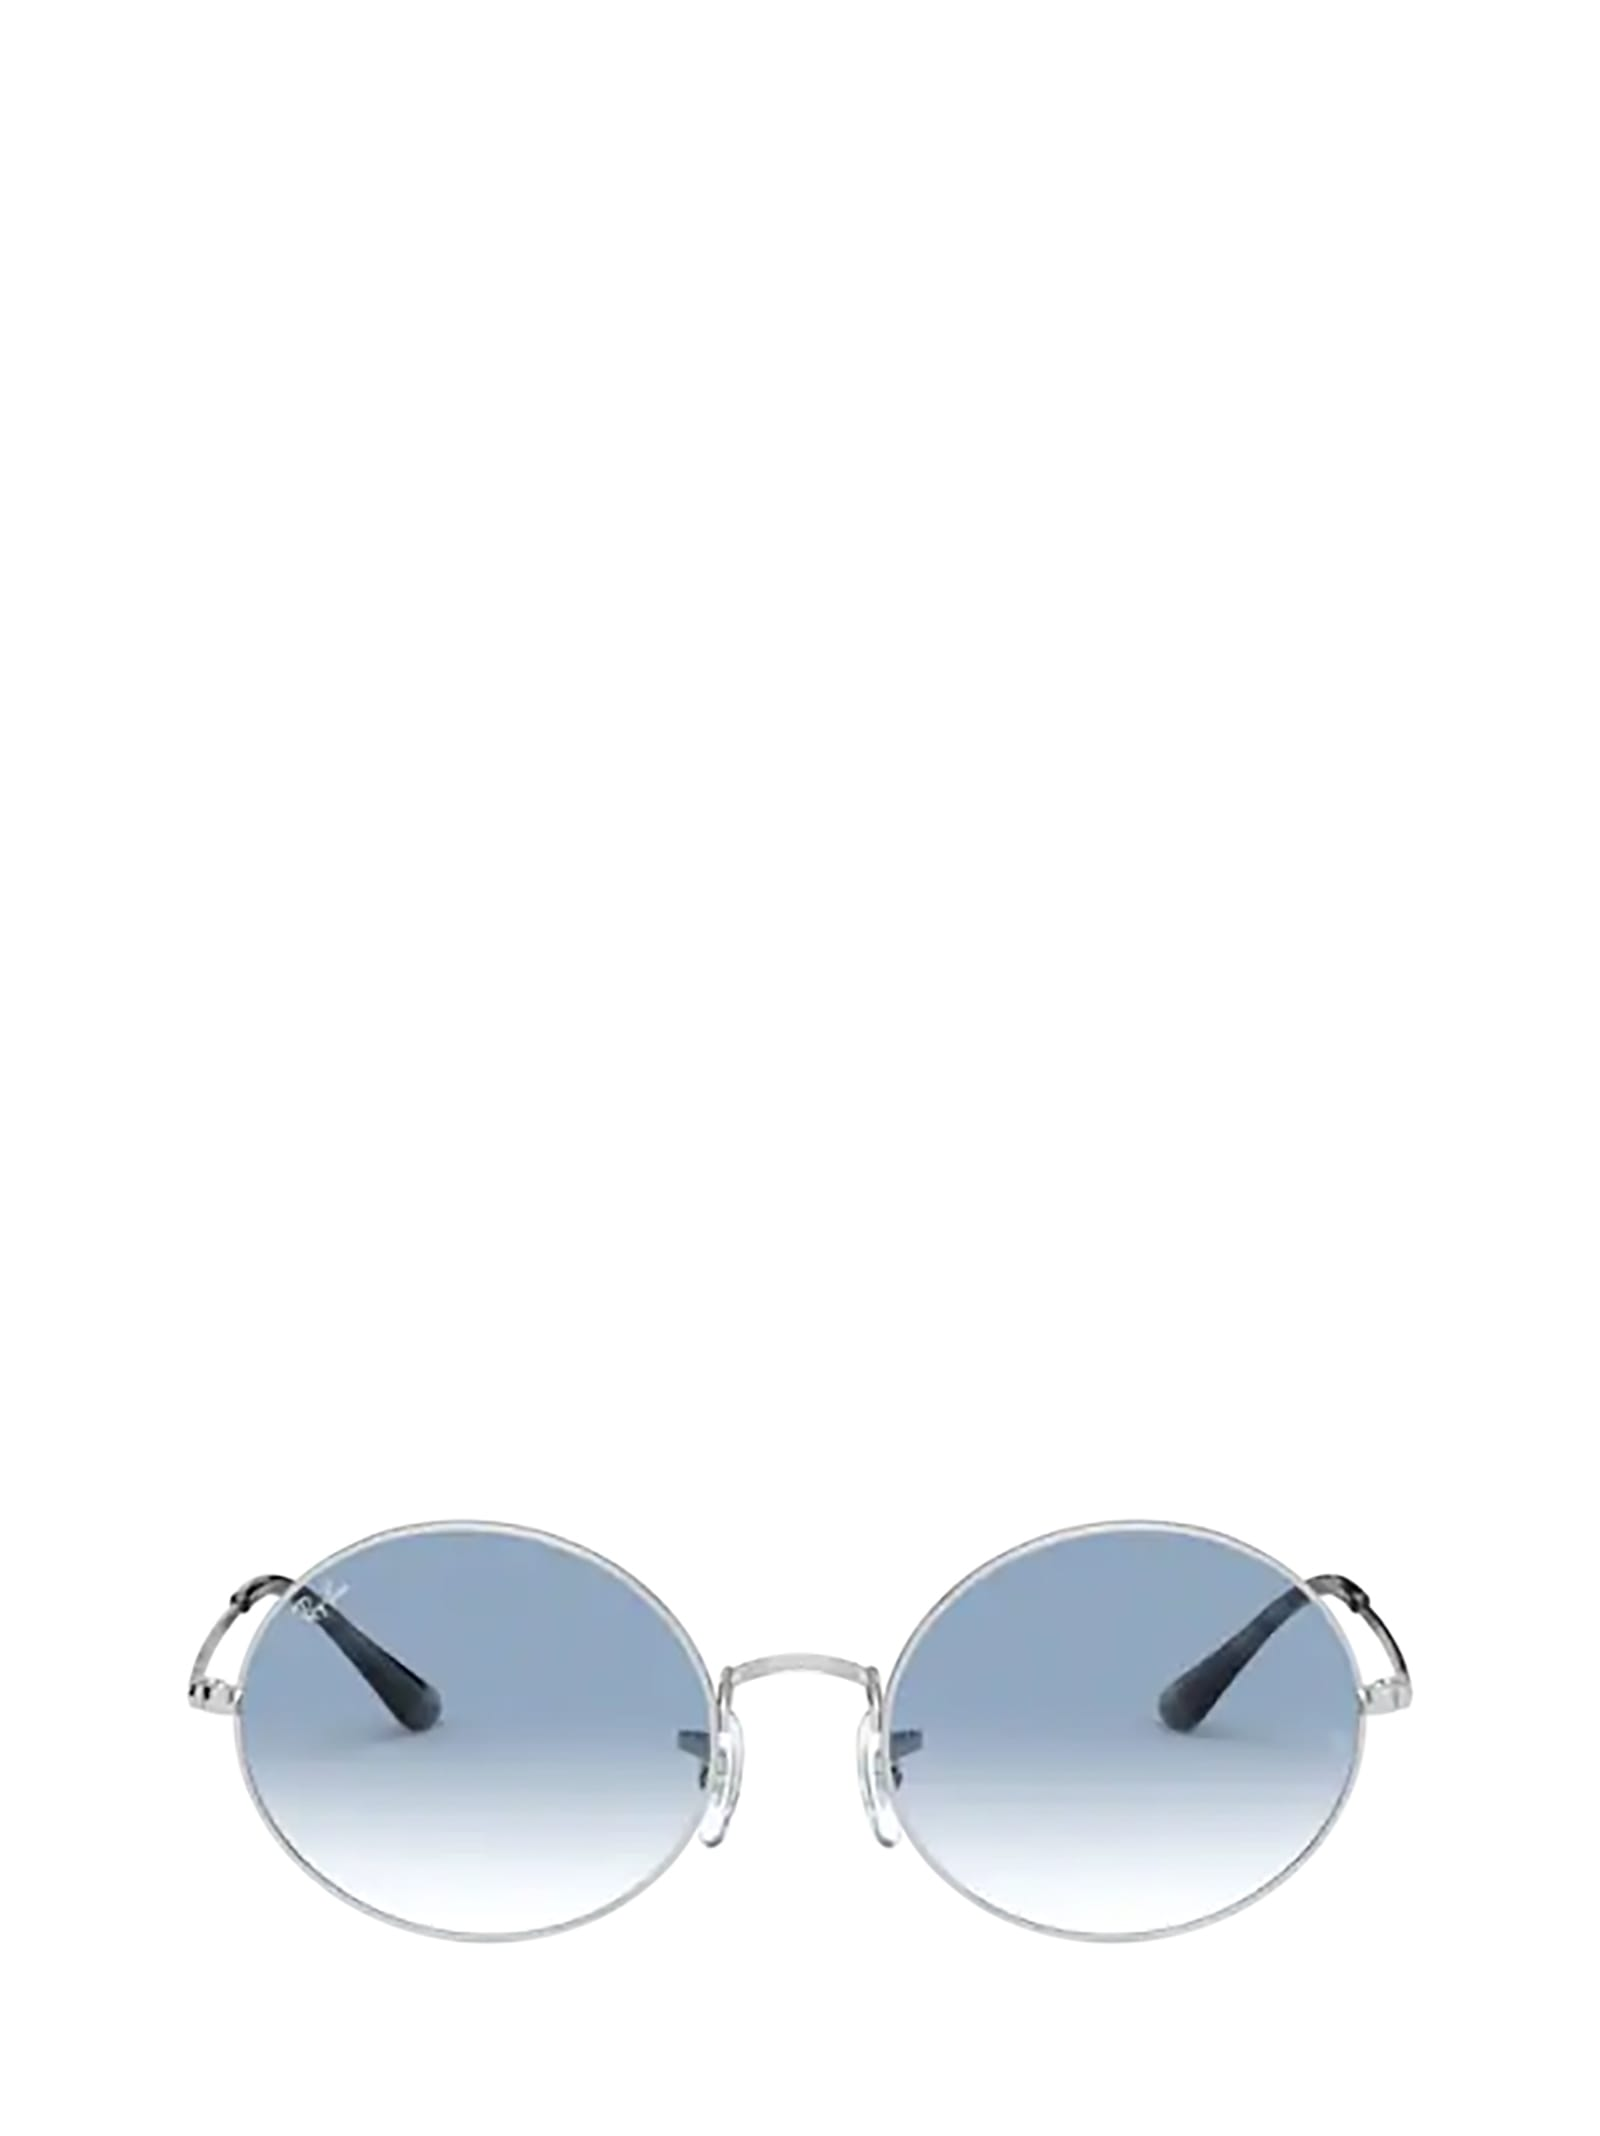 Ray-Ban Ray-ban Rb1970 Silver Sunglasses